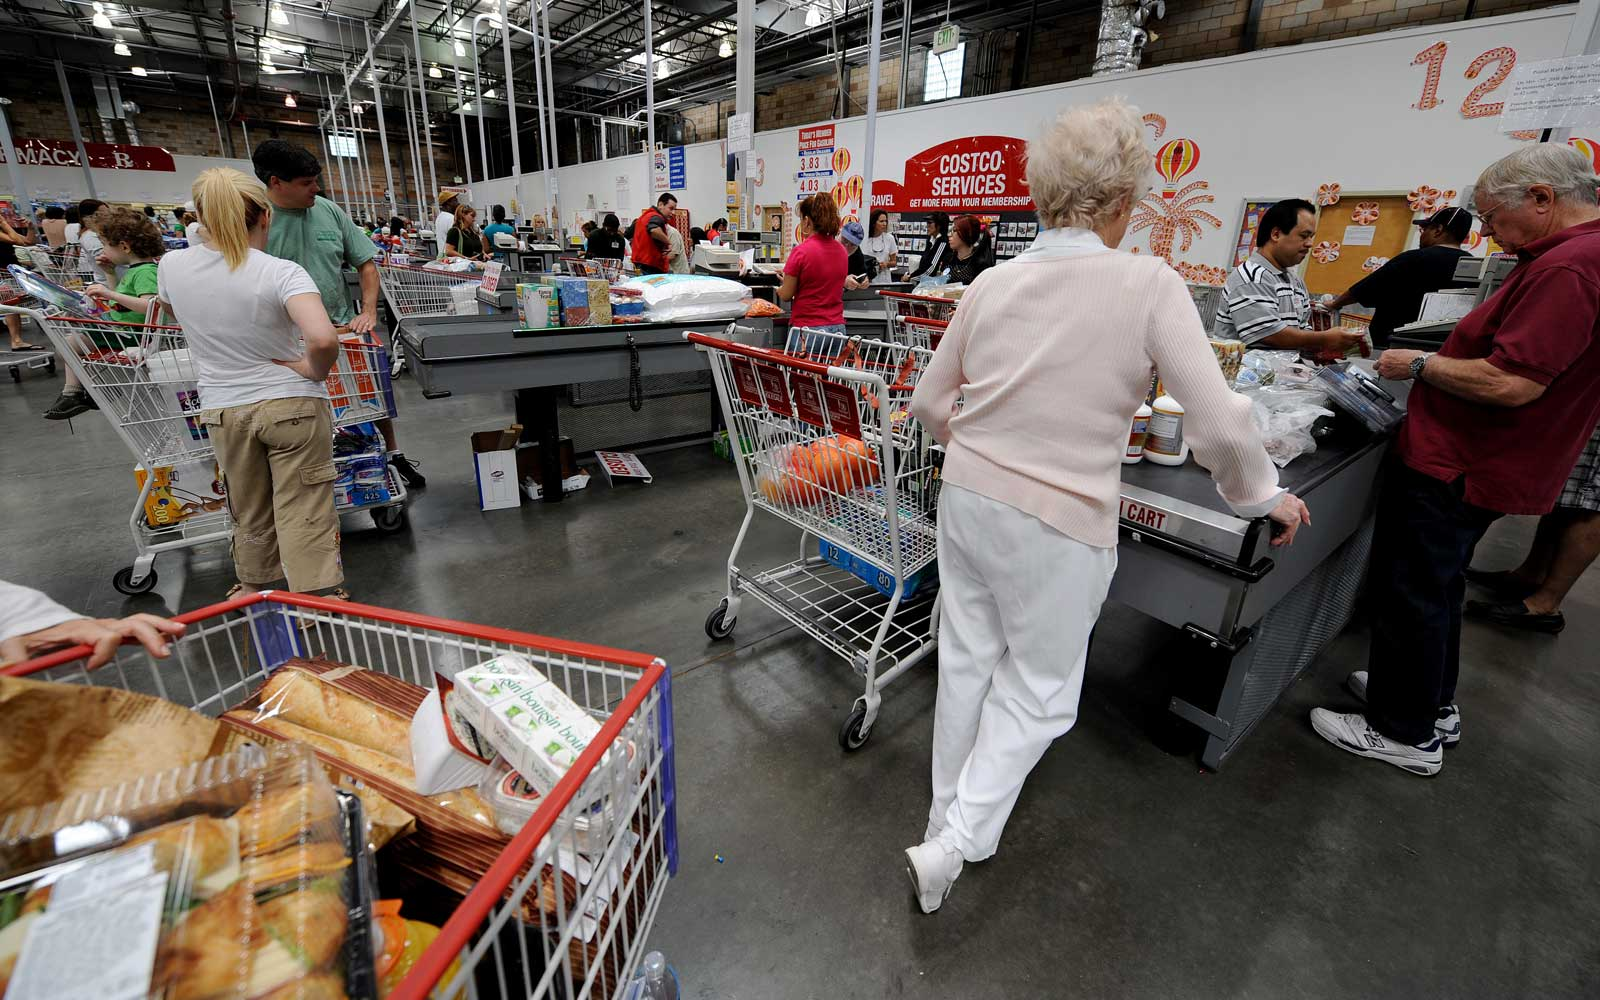 People shop at the reduced cost, high volume Costco supermarket warehouse